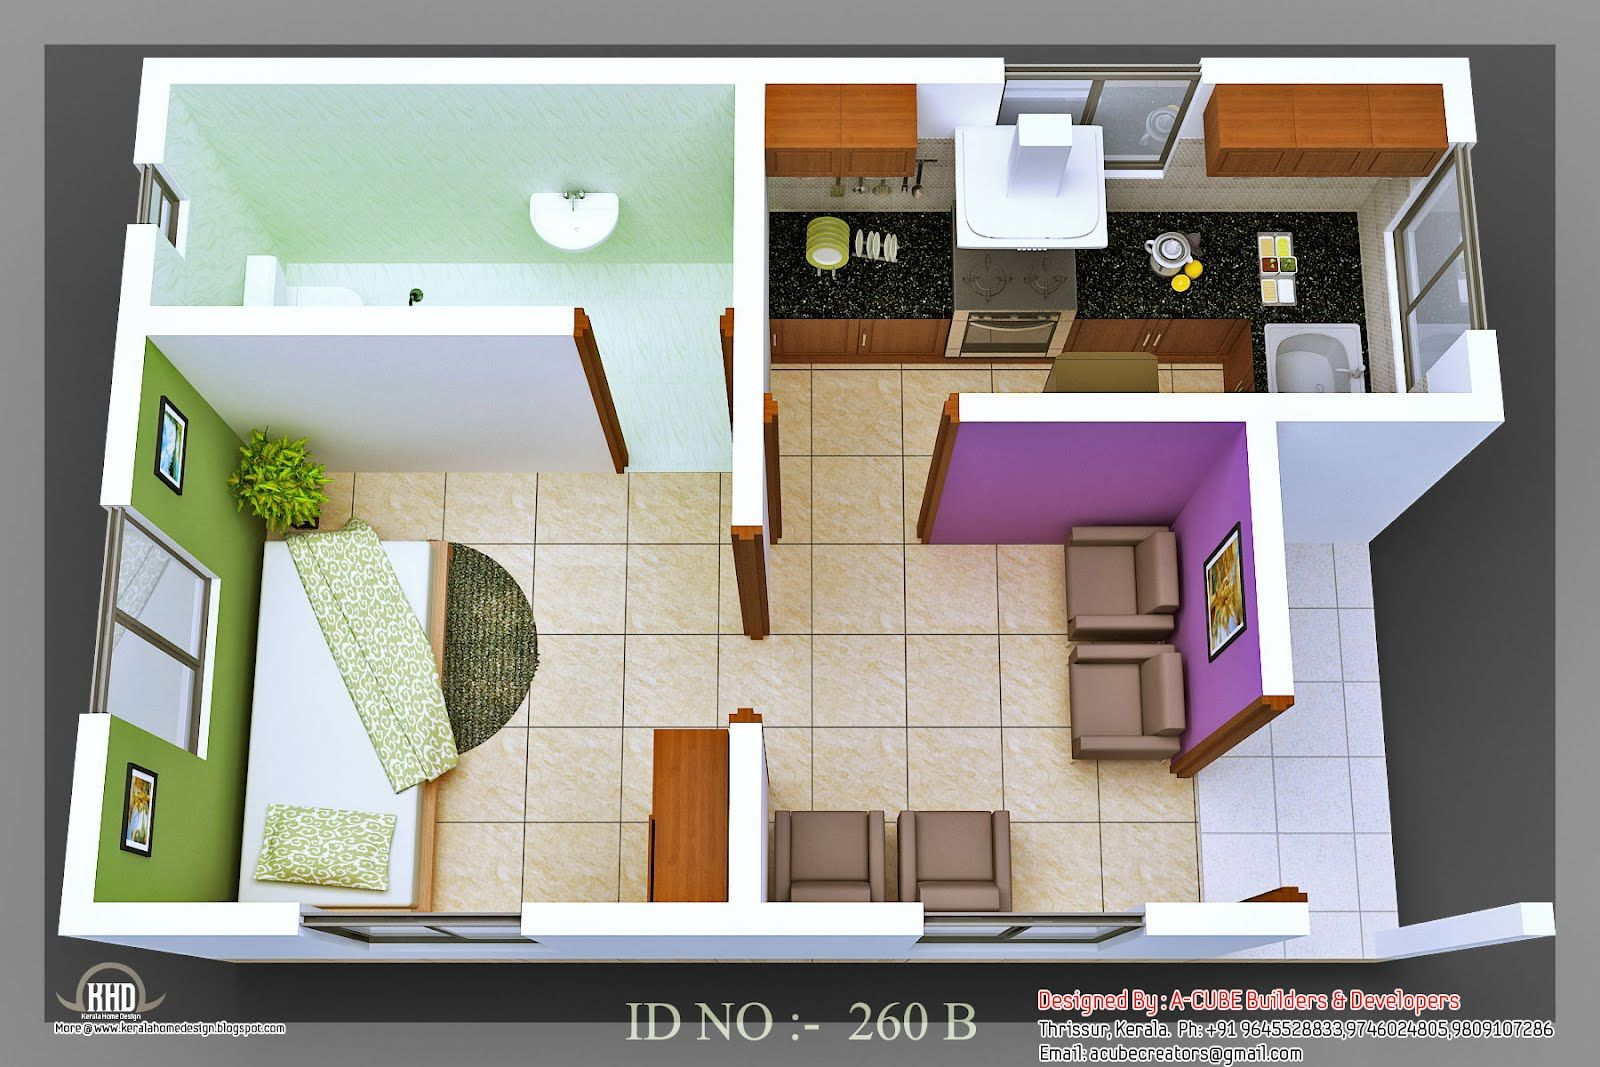 3d isometric views of small house plans kerala home design and - Small Homes Plans